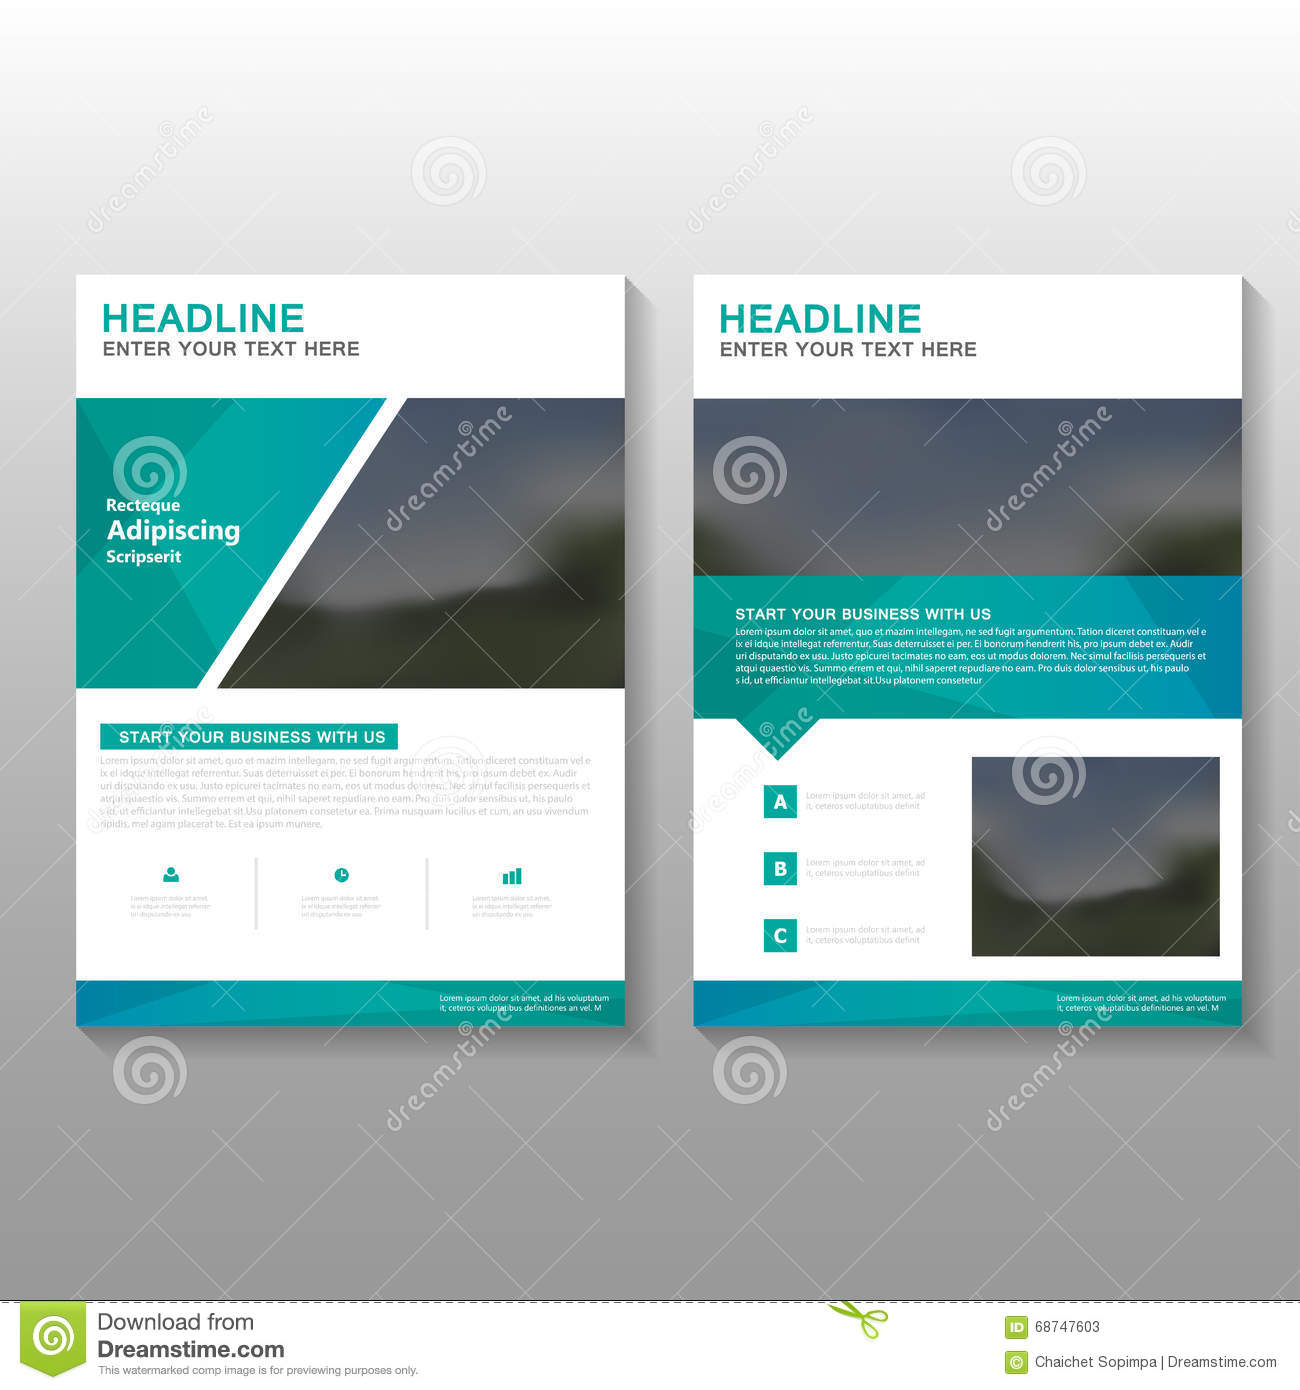 Green elegance vector leaflet brochure flyer business proposal green elegance vector leaflet brochure flyer business proposal template design book cover layout design abstract green template illustration 68747603 cheaphphosting Choice Image